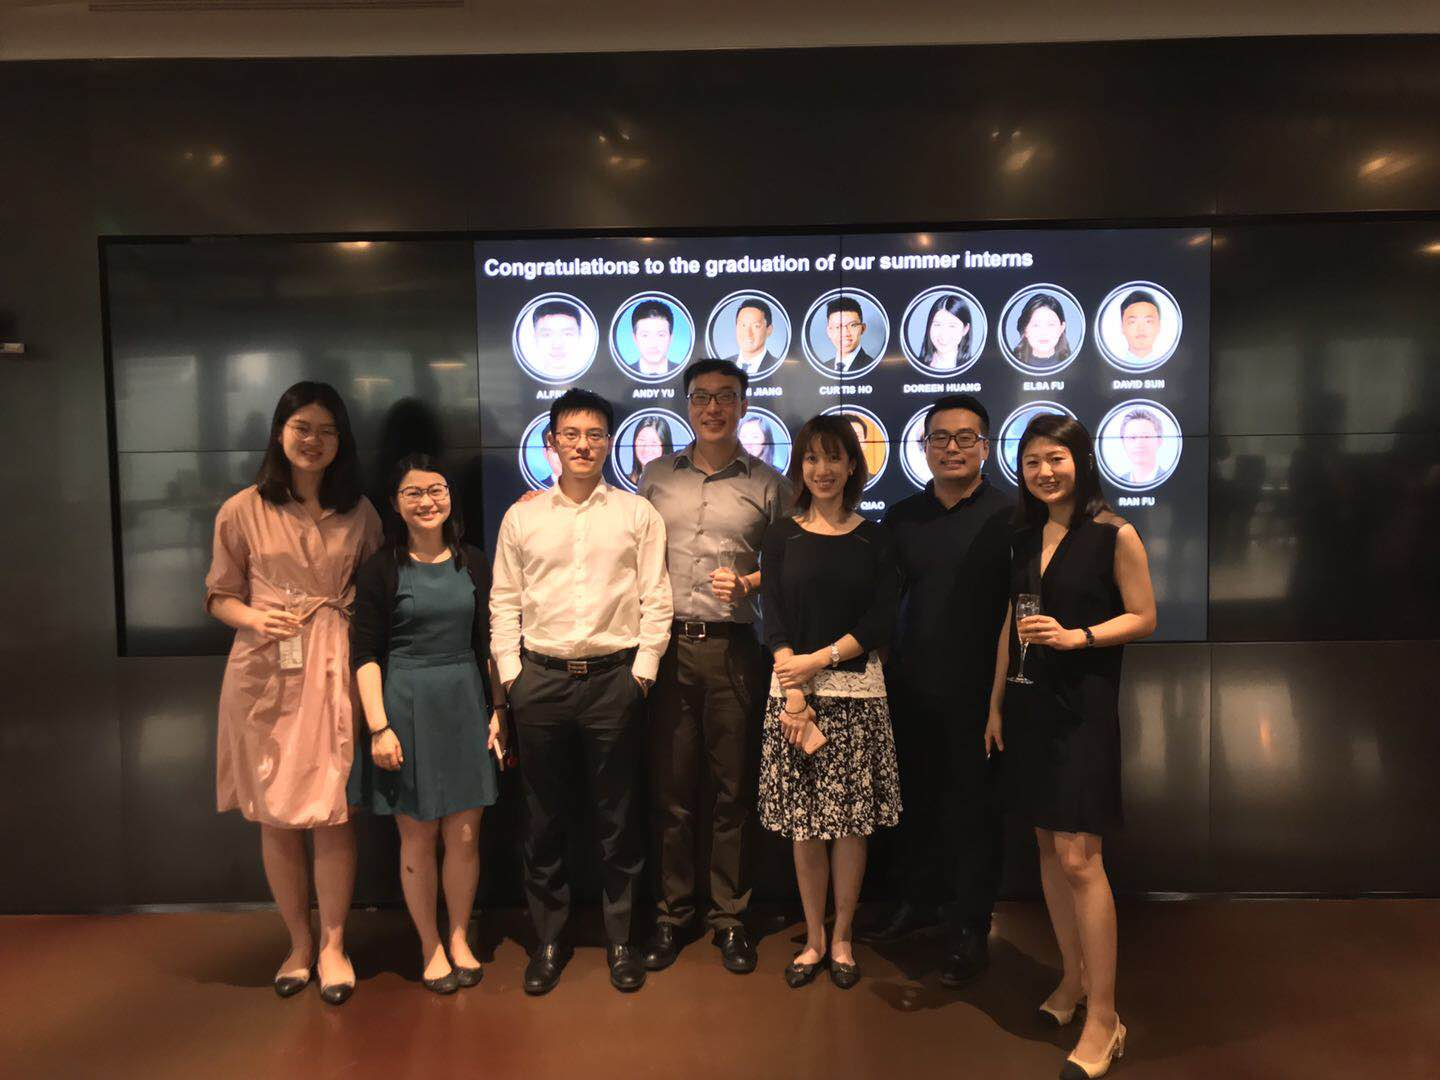 sijia-avery-tang-class-of-2020-shares-cross-cultural-insights-from-consulting-internship-in-china